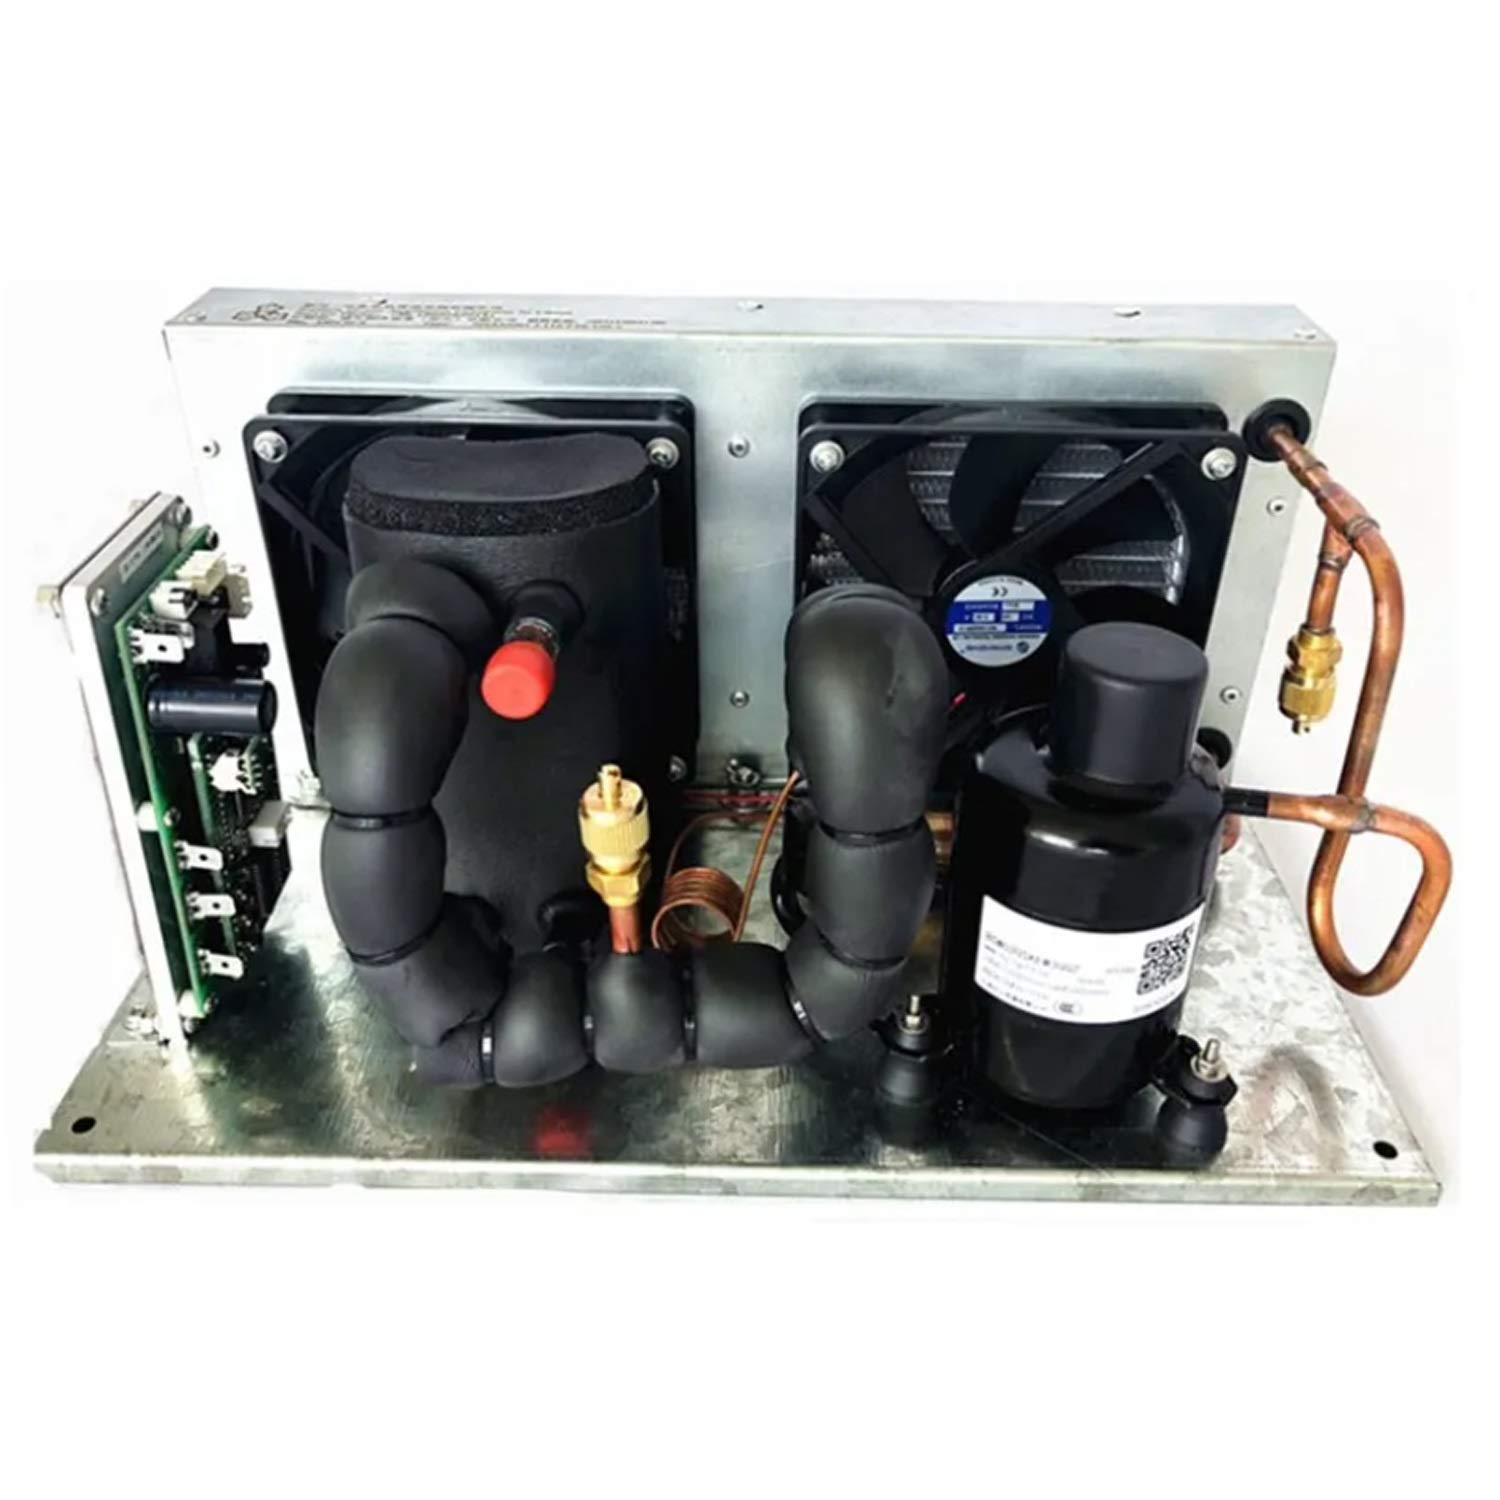 Shengjuanfeng Portable Cooling System Liquid Chiller Module DC 48V 137-455W Liquid Cooling System,P-Plate Liquid Chiller Module R134A Refrigerant Liquid Loop Cycling Refrigeration Small Cooling Unit